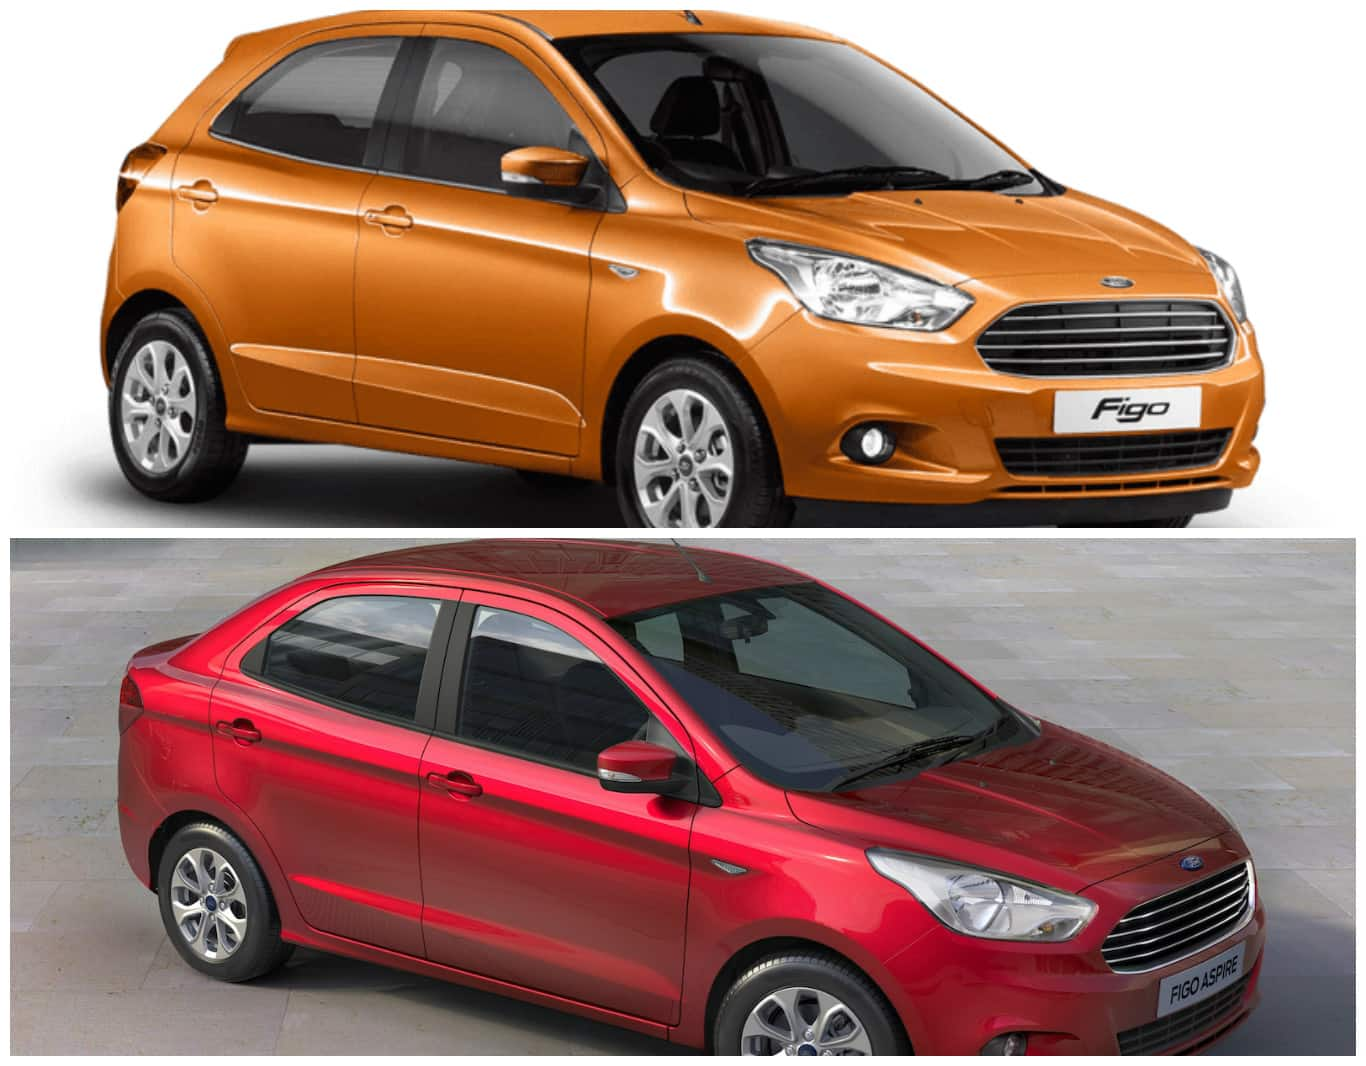 Diwali 2016 Offer On Ford Cars Get Cash Discount Of INR 91000 Figo Aspire